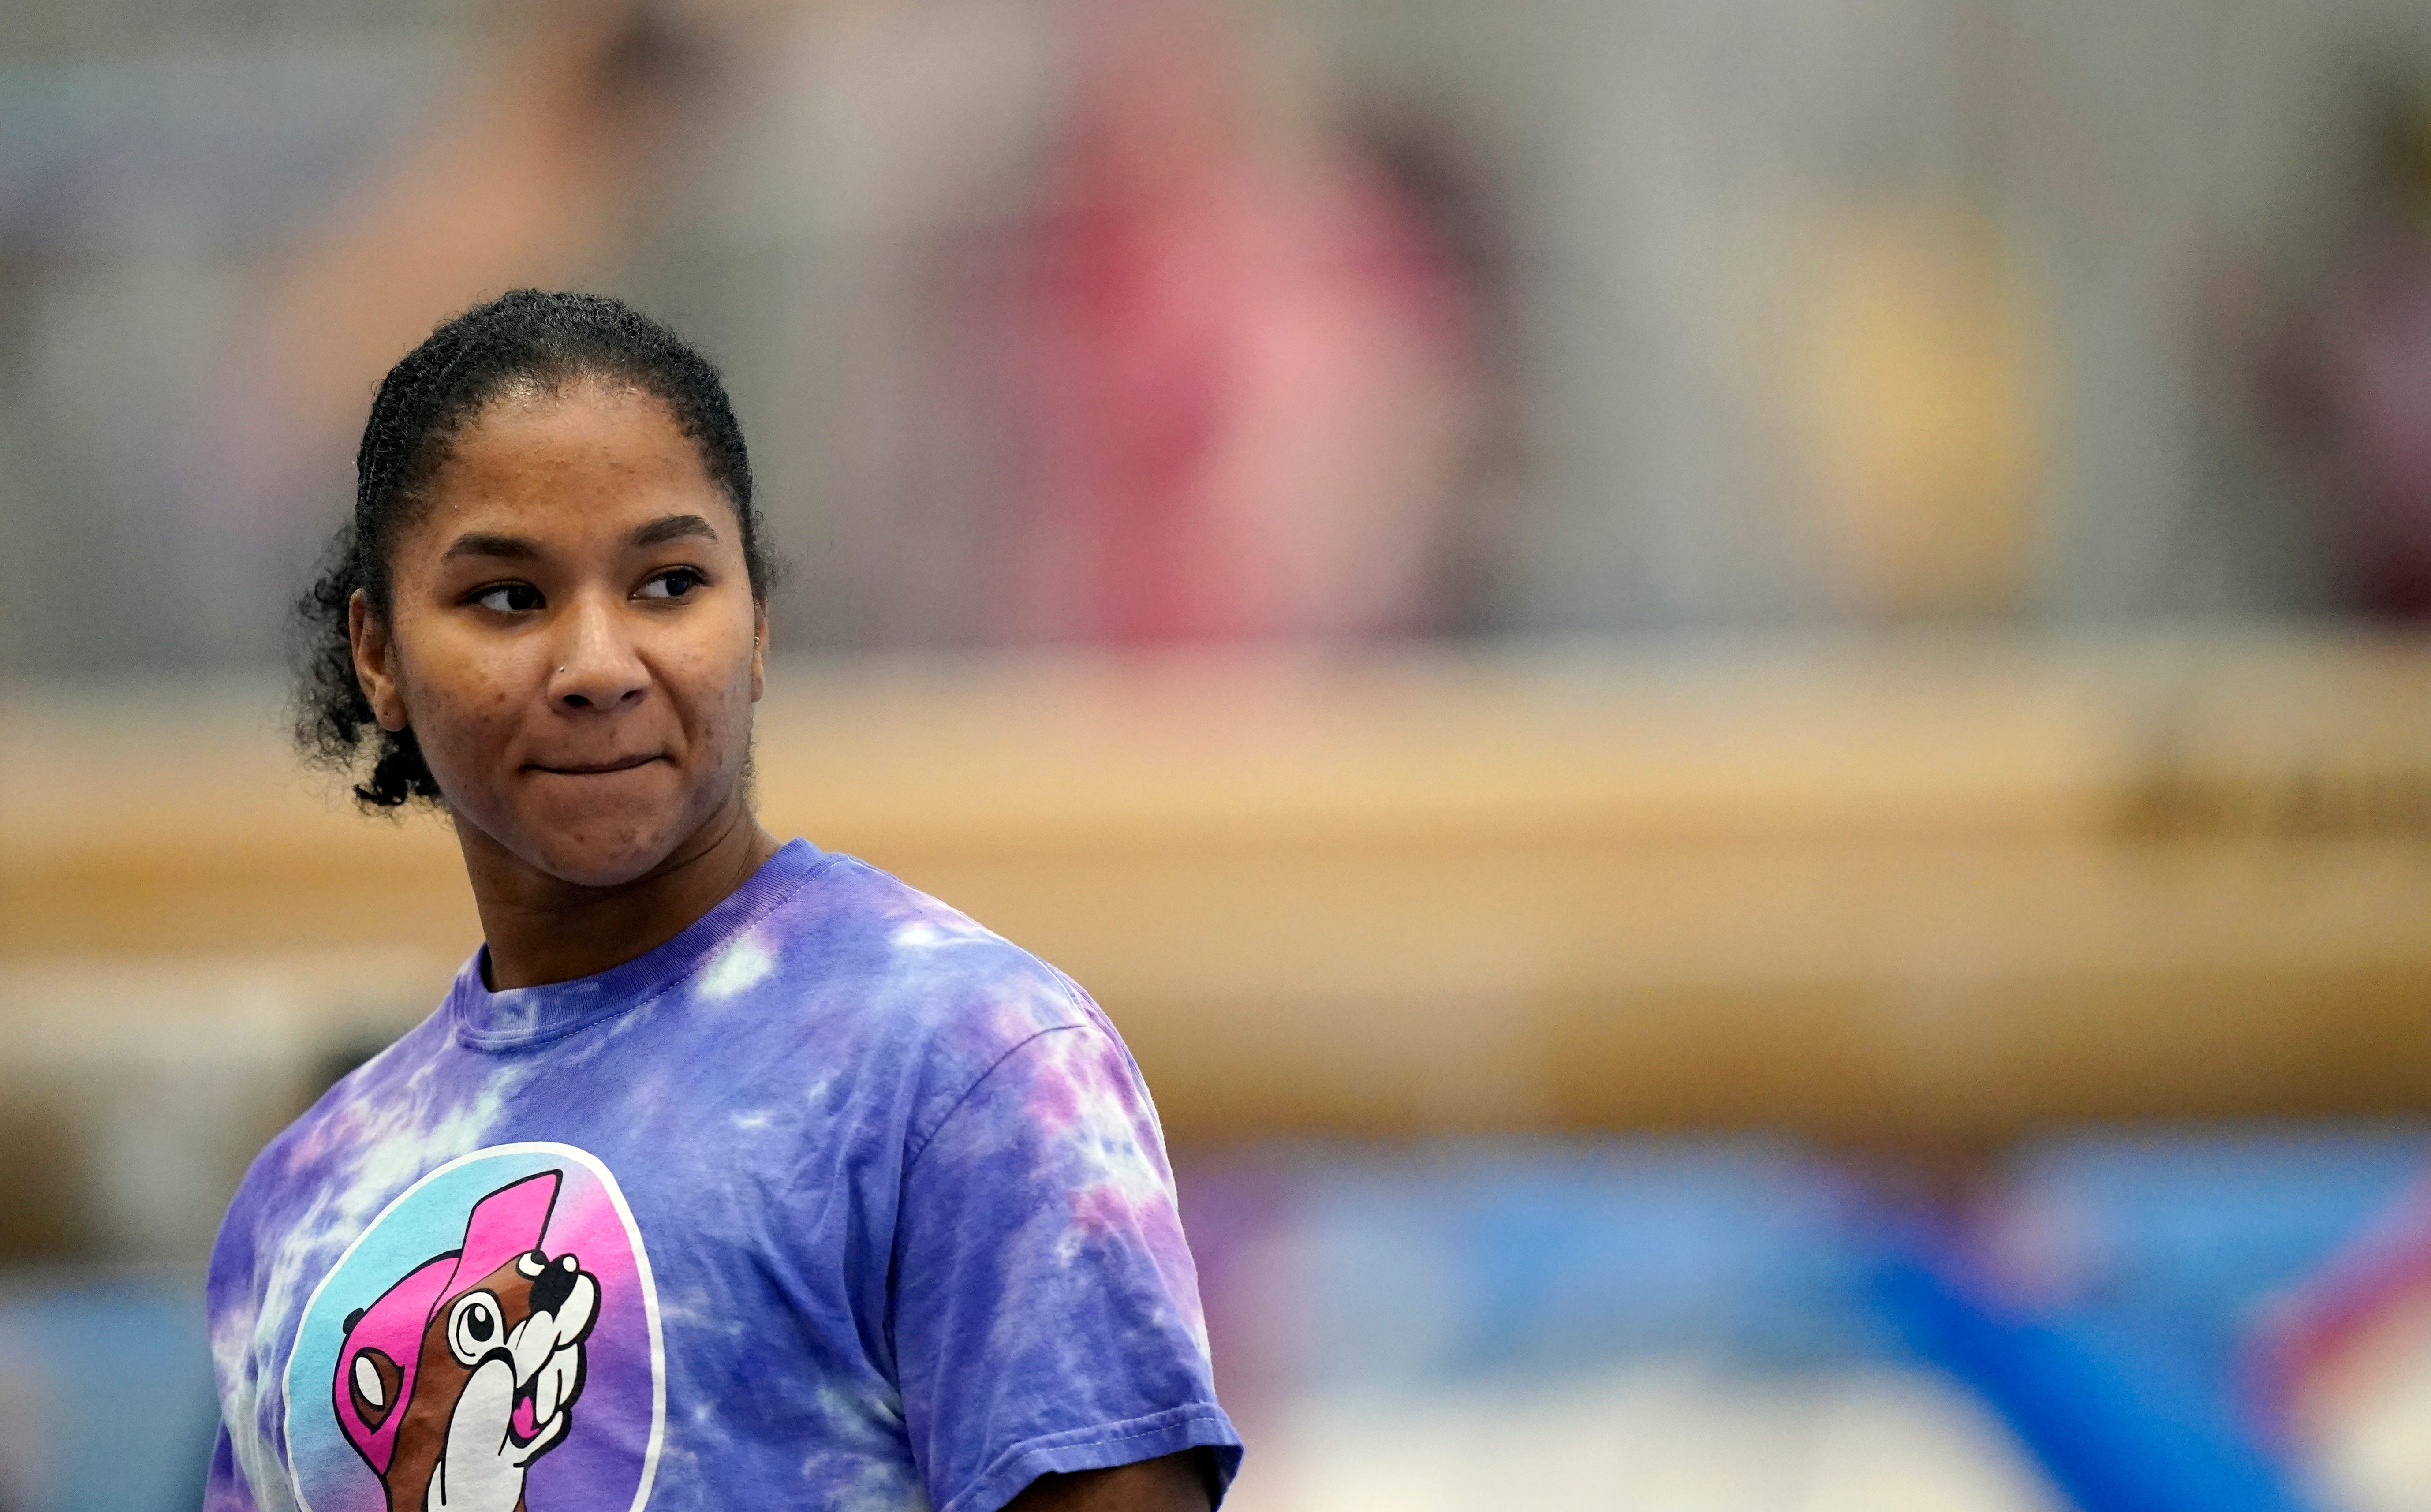 'Just be Jordan:' How gymnast Jordan Chiles has positioned herself for Tokyo Olympics